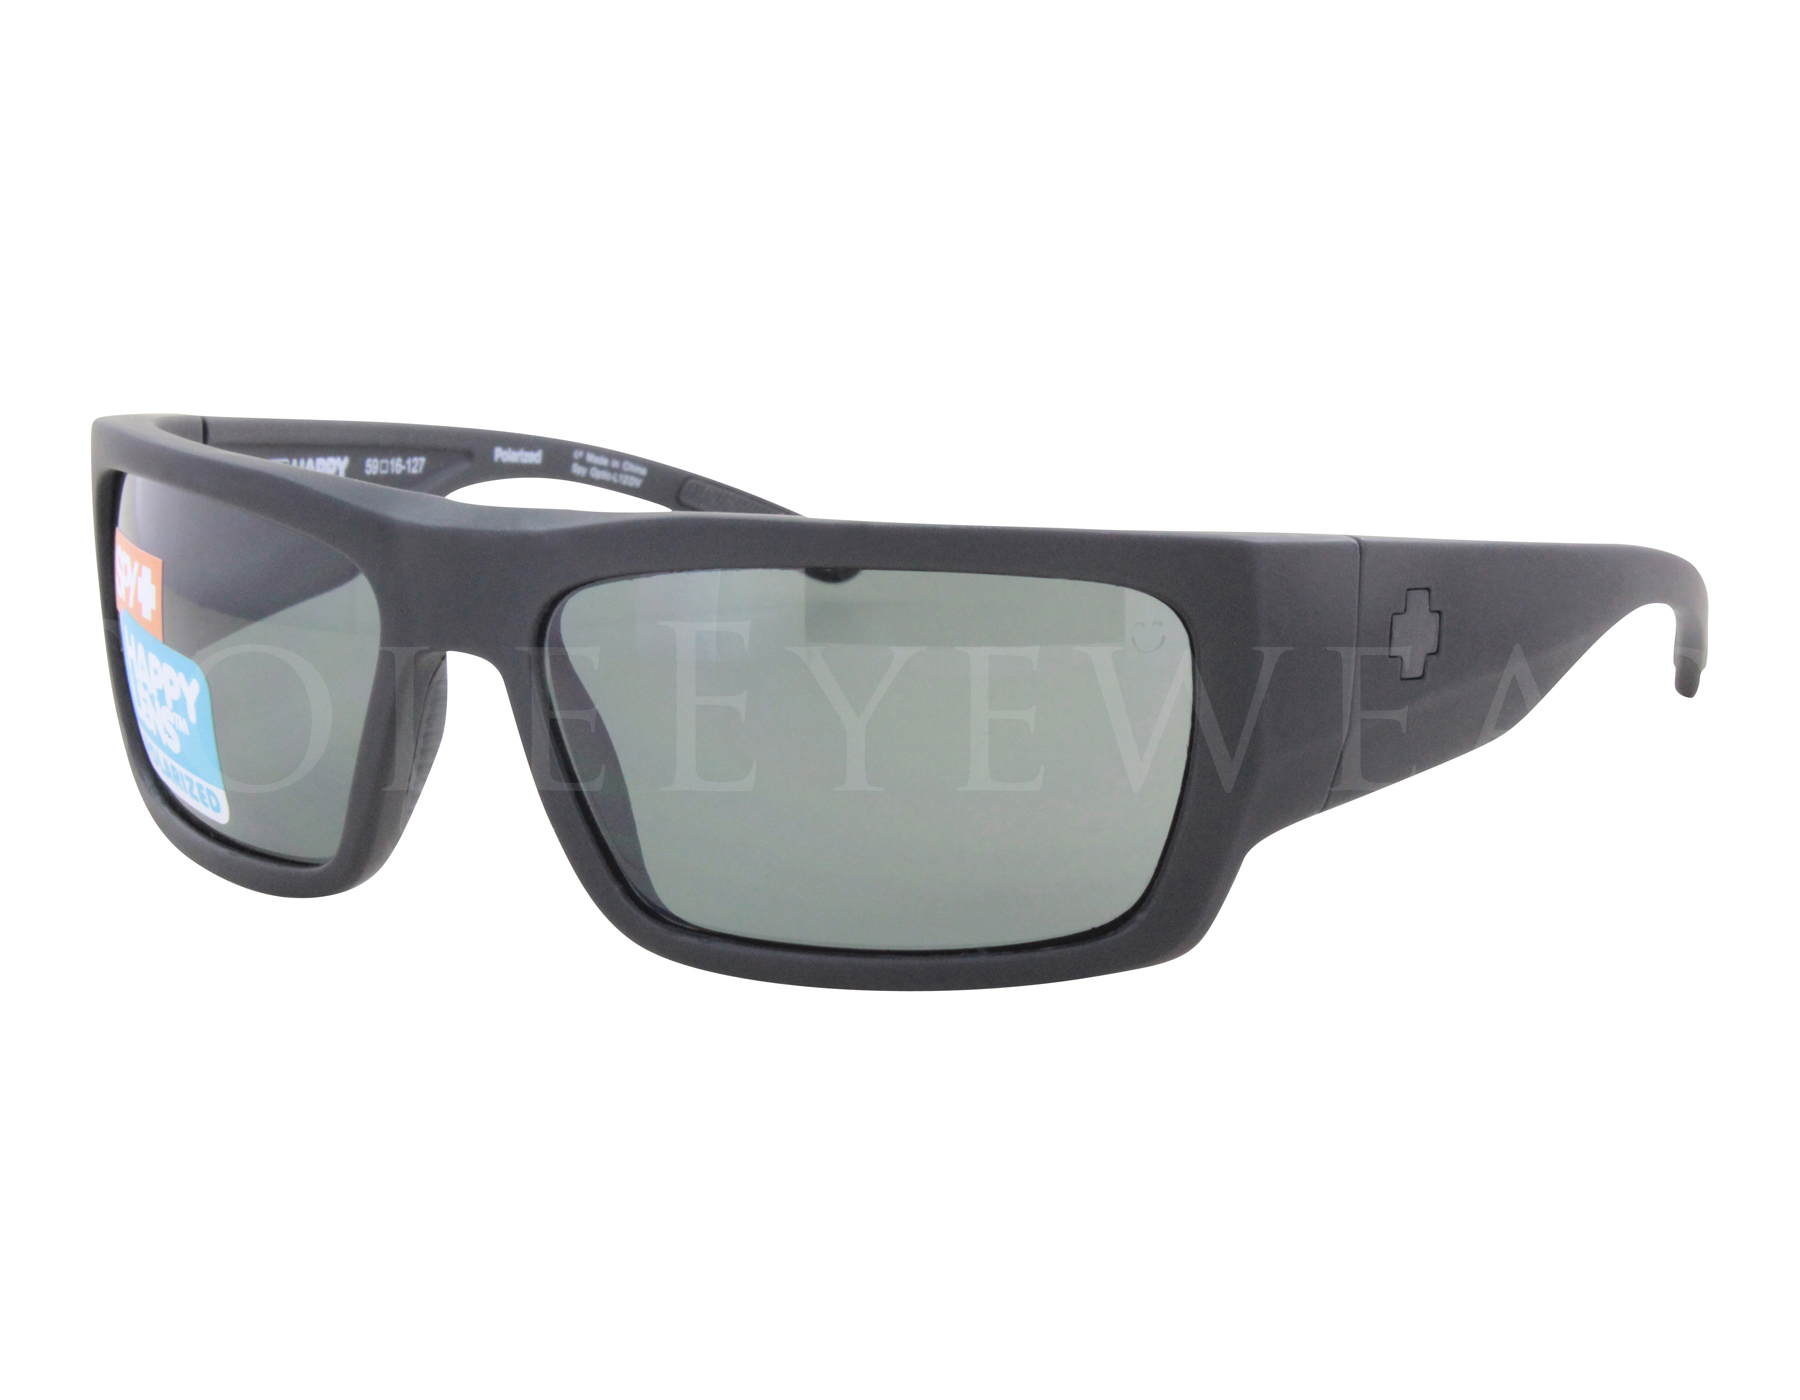 707860bfe13 Details about NEW Spy Optics Rover 673372973864 Soft Matte Black   Happy  Grey Polar Sunglasses